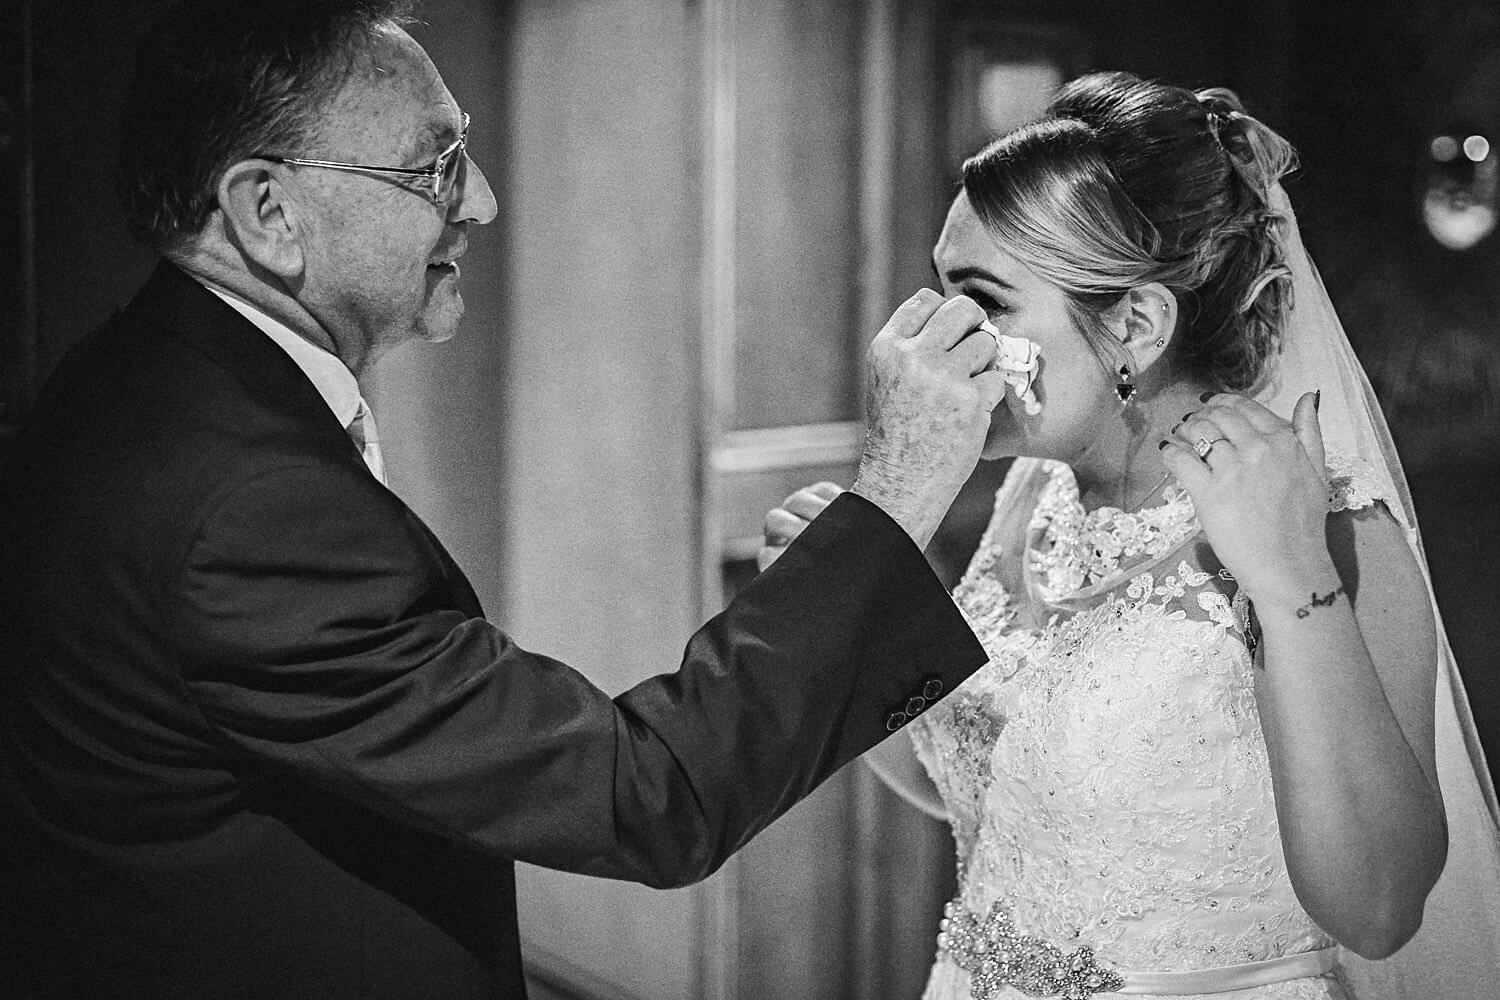 Dad whipping tears from face of crying daughter on wedding day. Do I need a 2nd wedding photographer